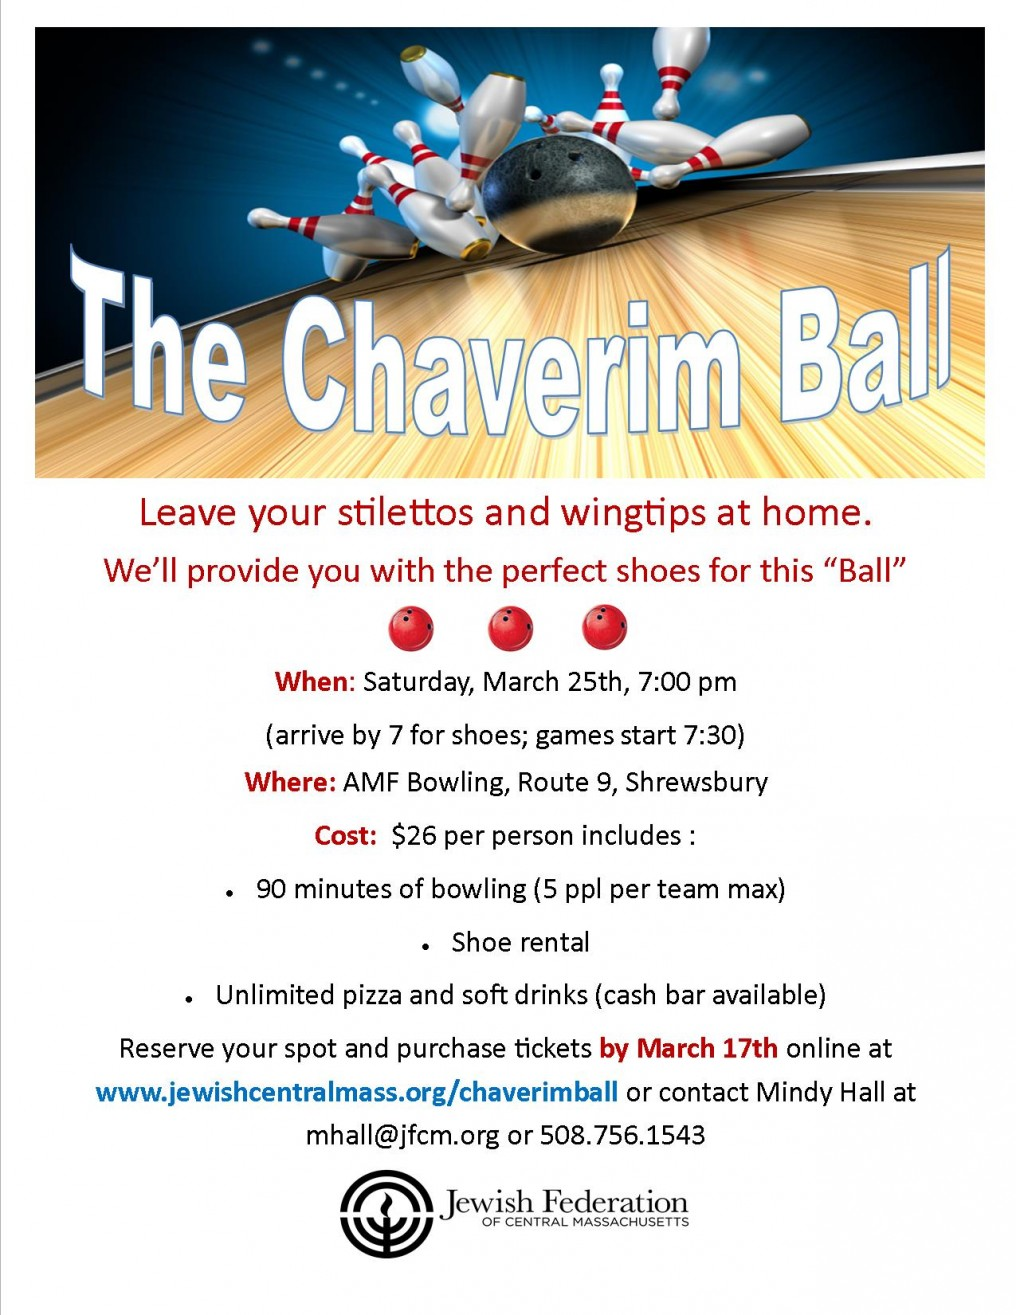 Chaverim Ball1.jpg